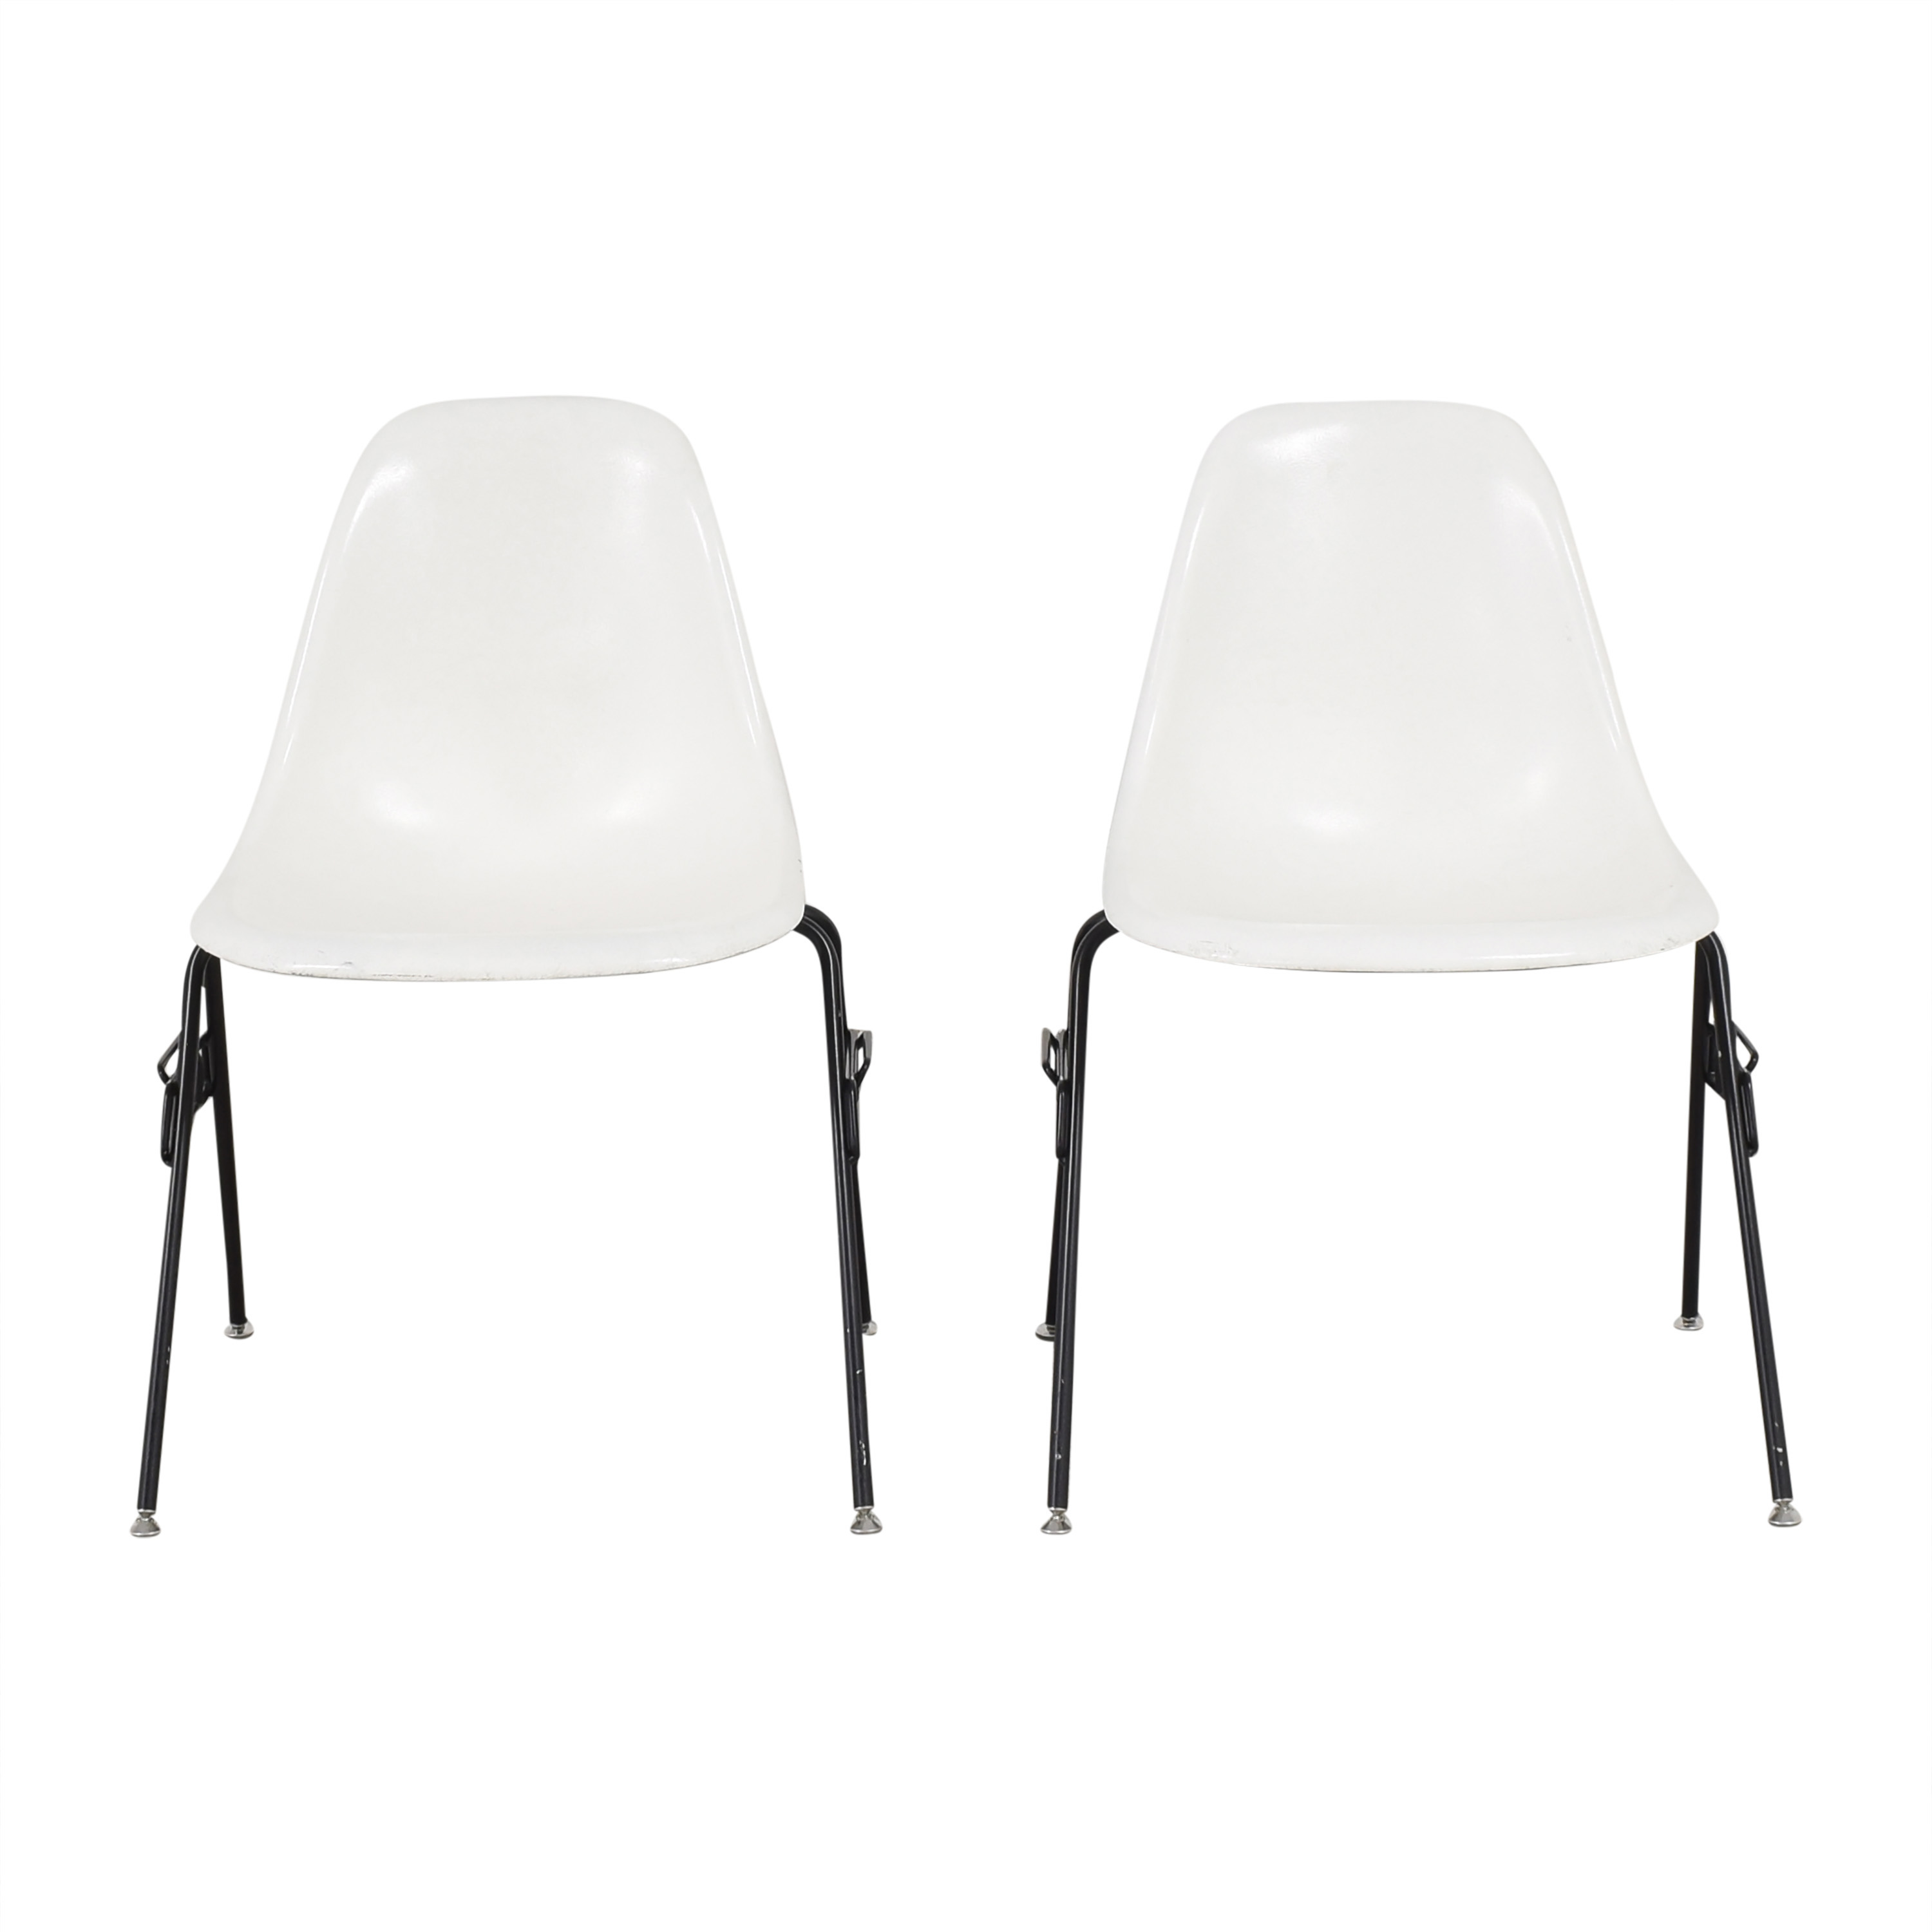 Modernica Modernica Case Study Furniture Side Shell Stacking Chairs ct